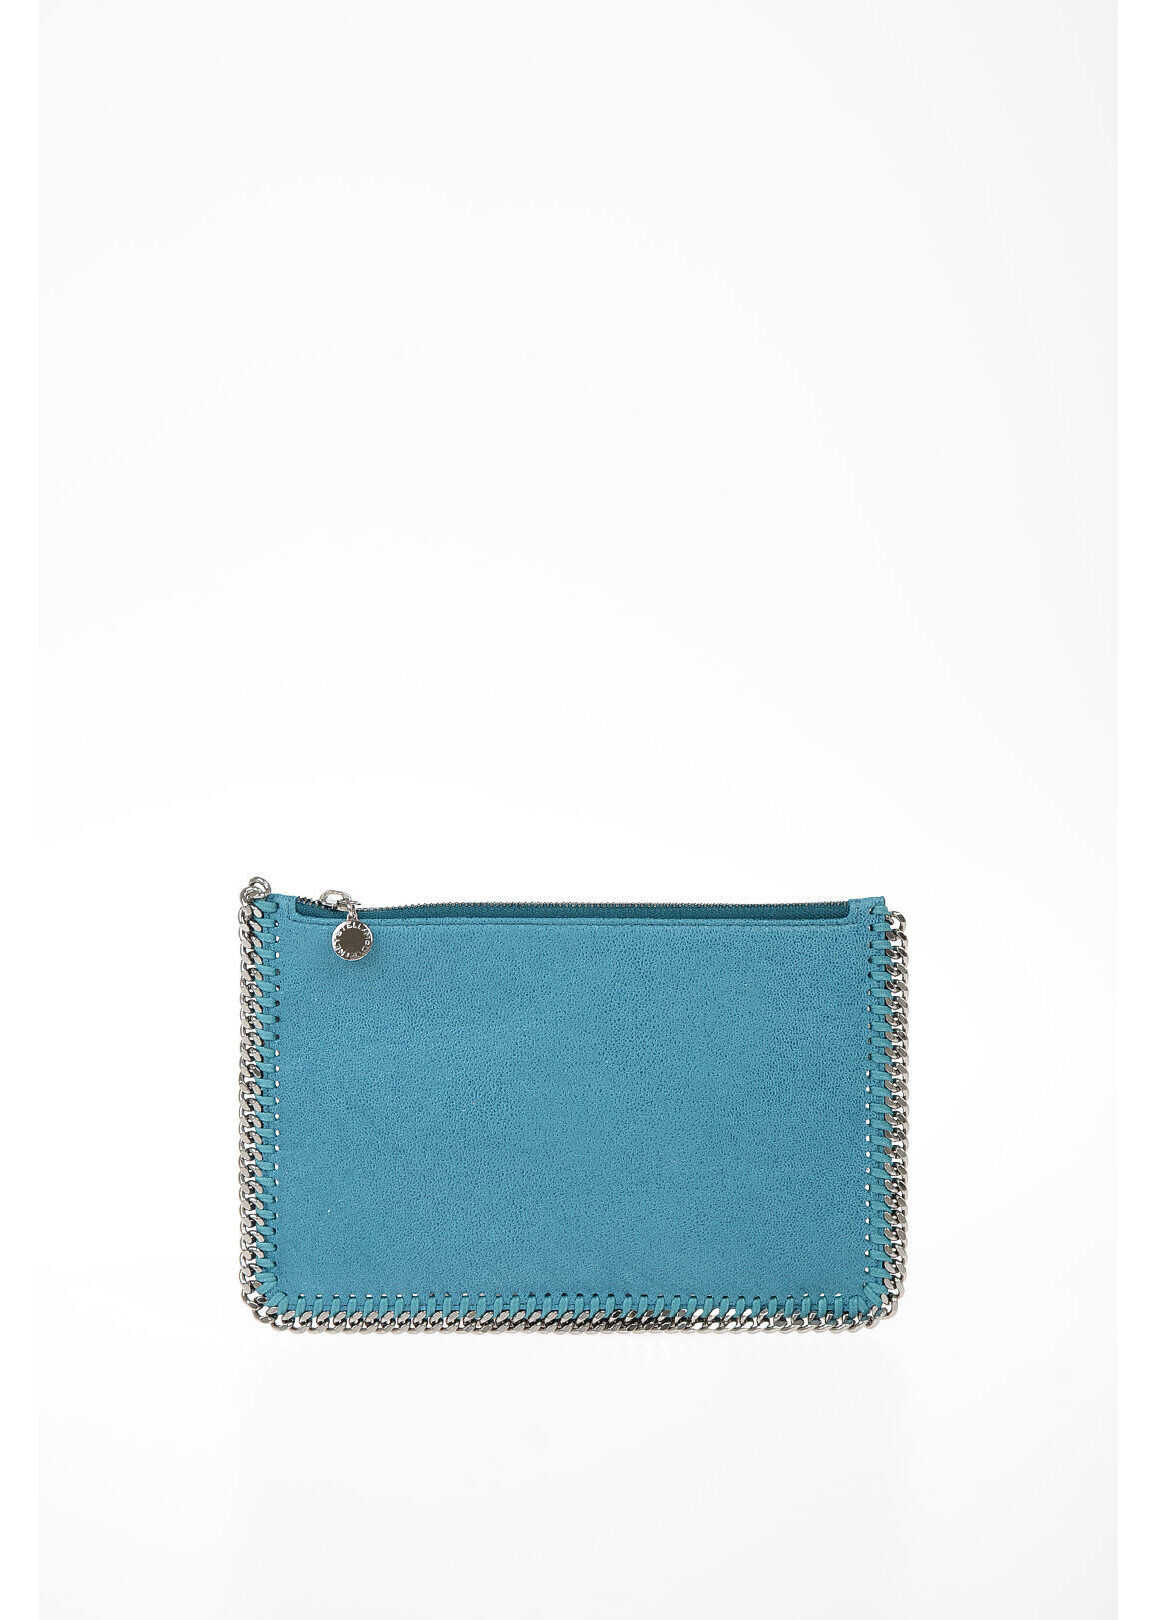 Faux Leather FALABELLA Mini Shoulder Bag thumbnail